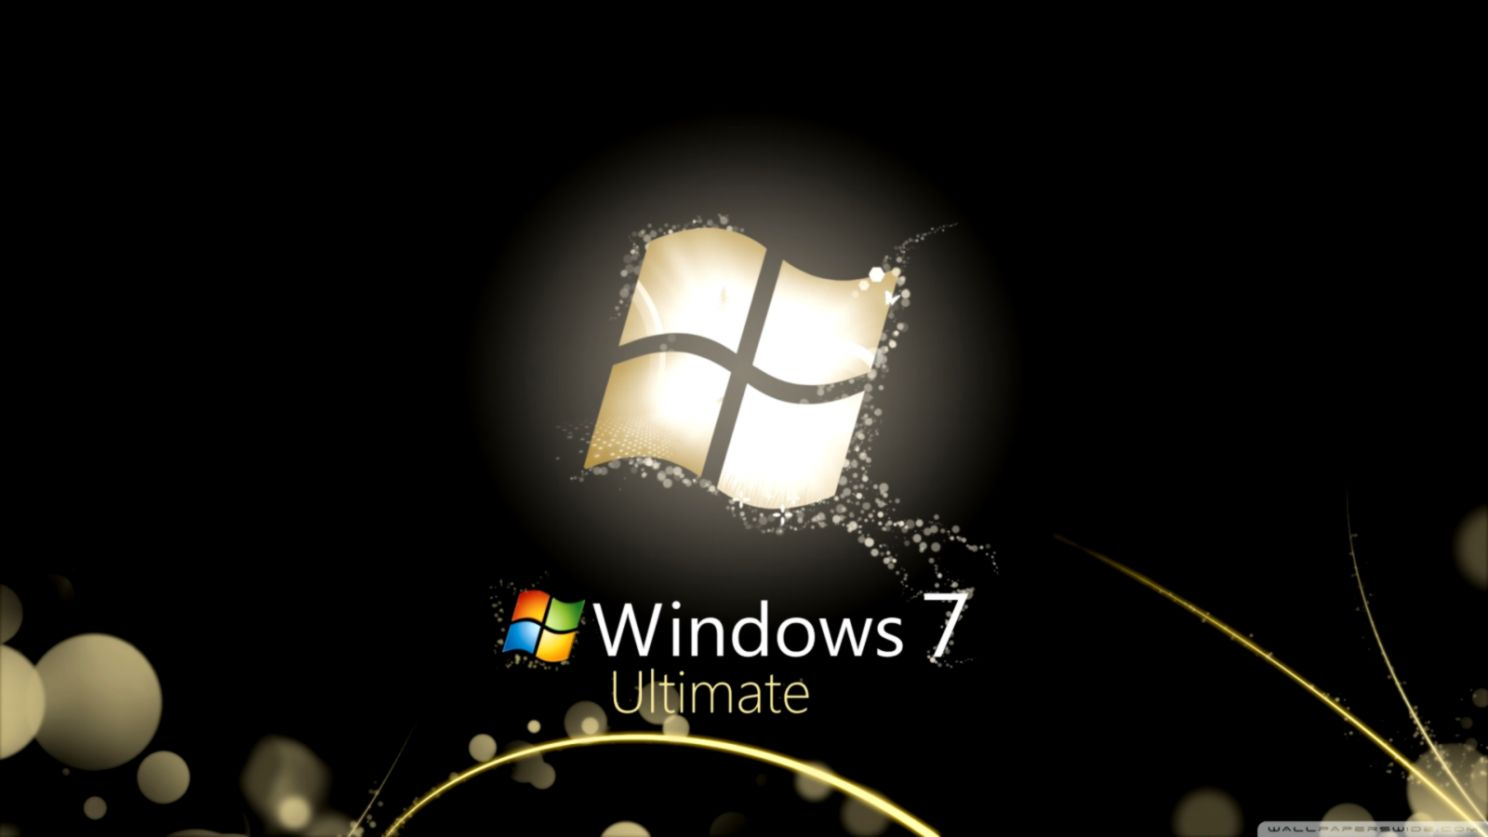 Hd Desktop Wallpaper For Windows 7 The Champion Wallpapers